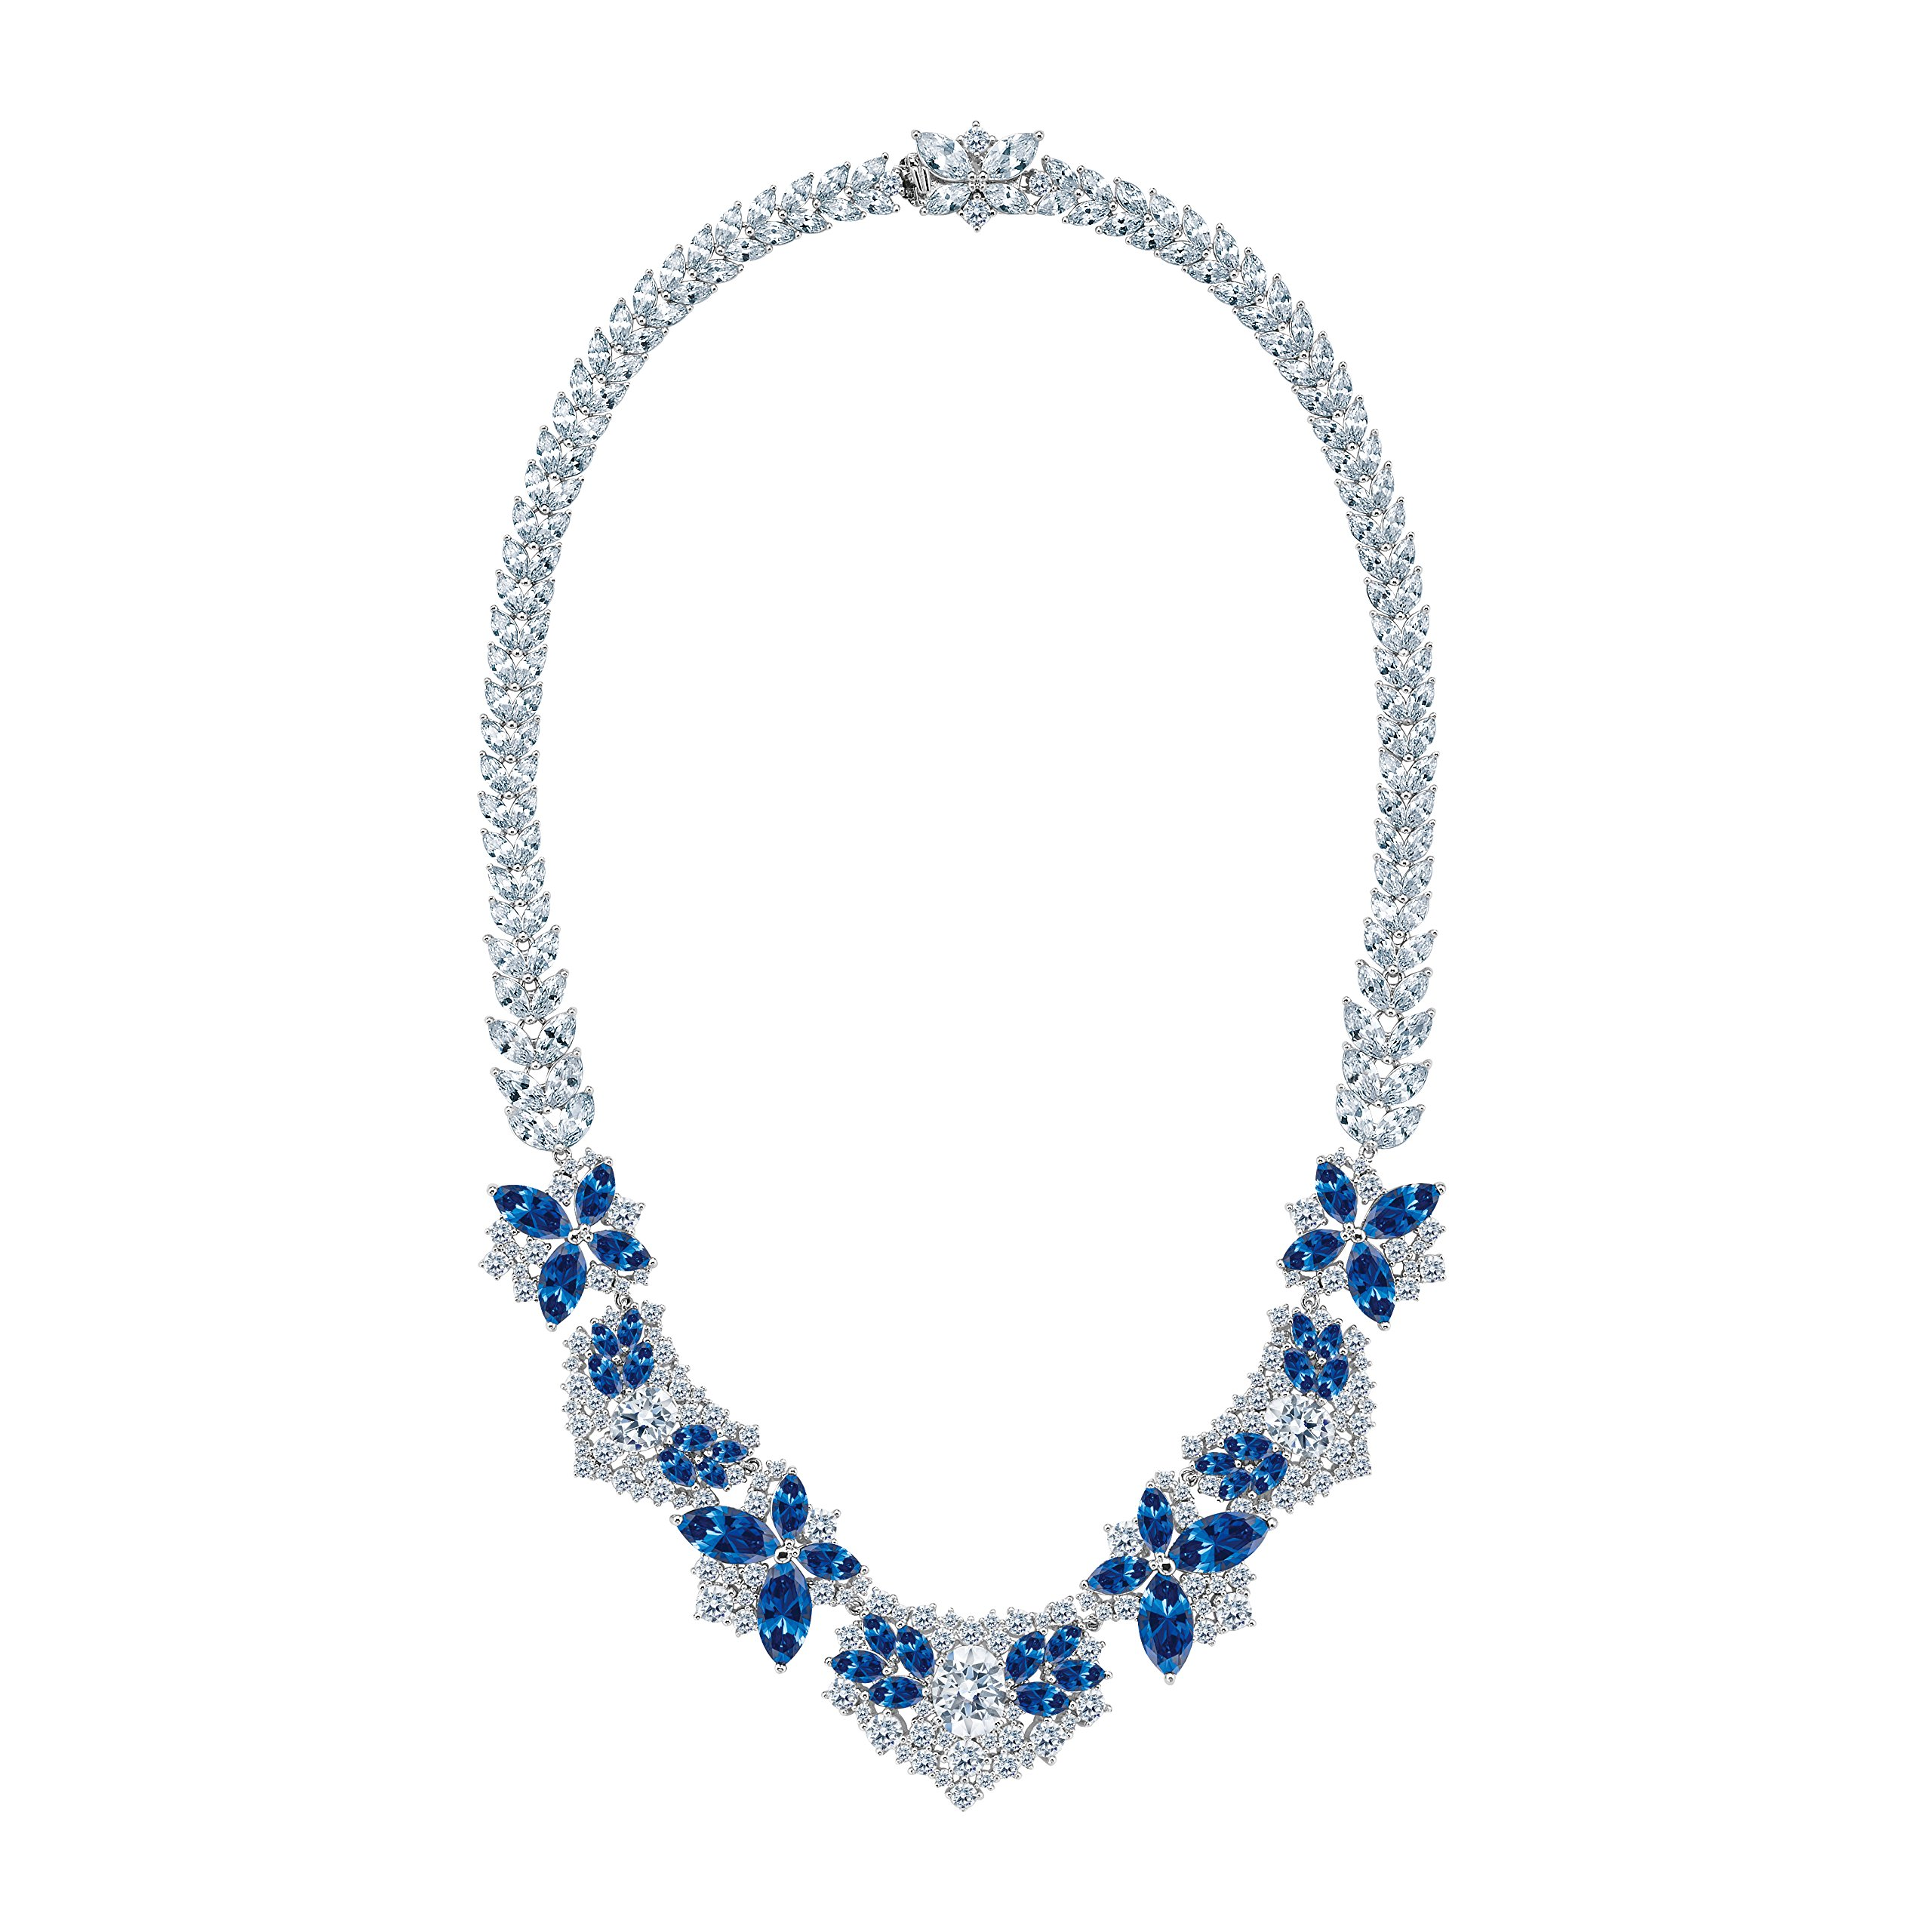 MIYUMIRO Women's Royal Bloom In Blue Necklace - Royal Blue Collection